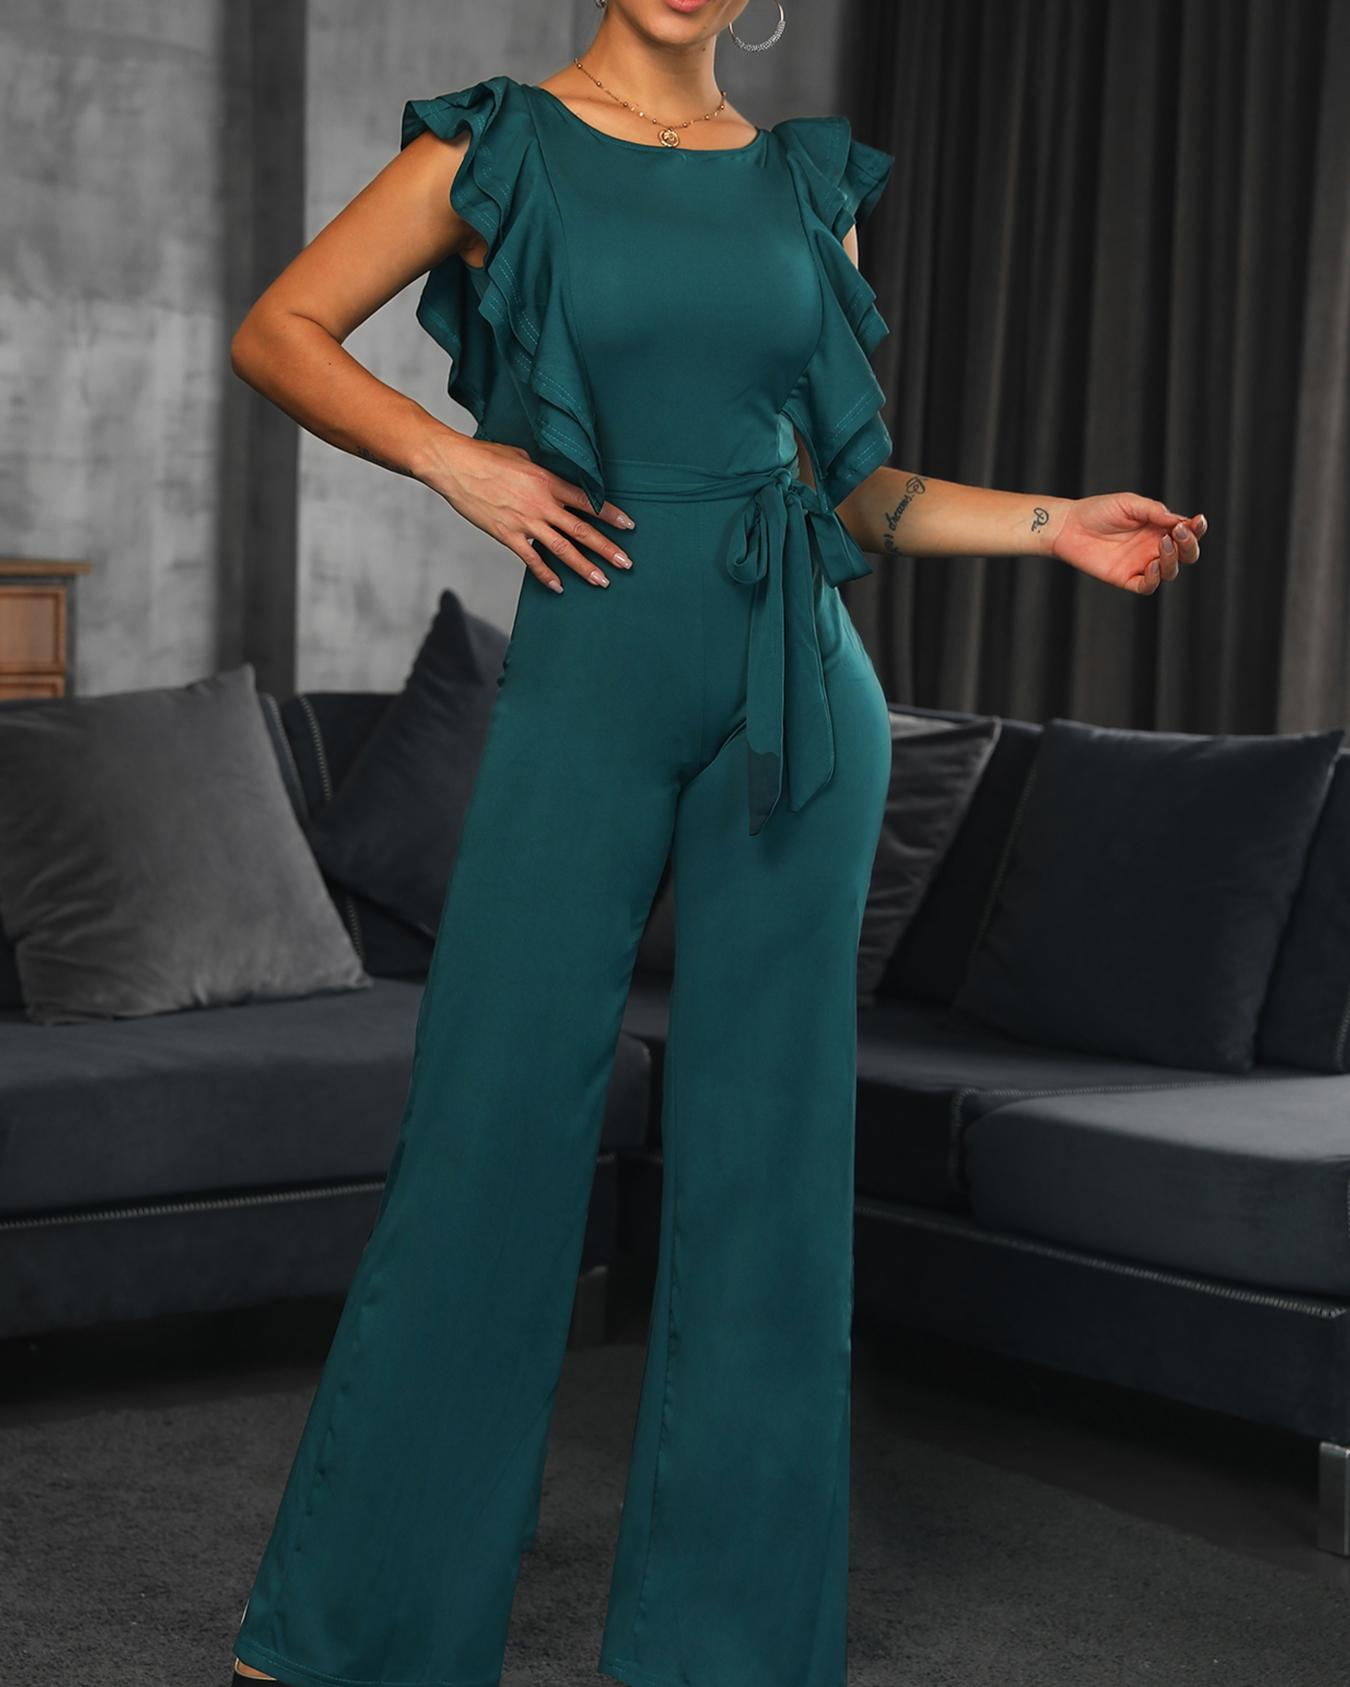 boutiquefeel / Layered Ruffles Low Back Belted Jumpsuit